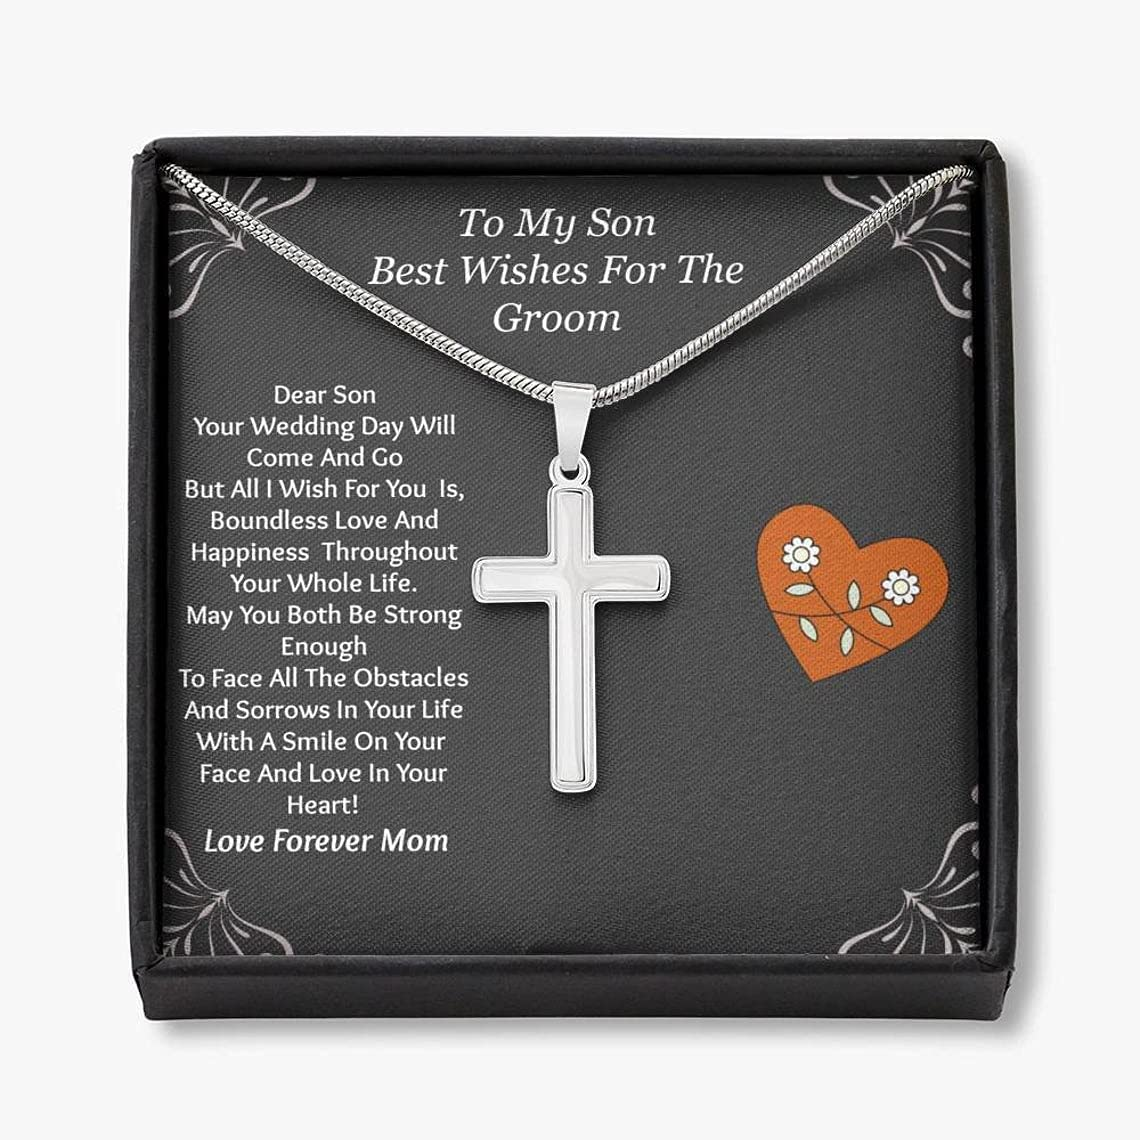 To My Son on His Wedding Day, Mother to Son Wedding Gift, Engraved Necklace for Son from Mother, Wedding Gift for Son, on Wedding Day